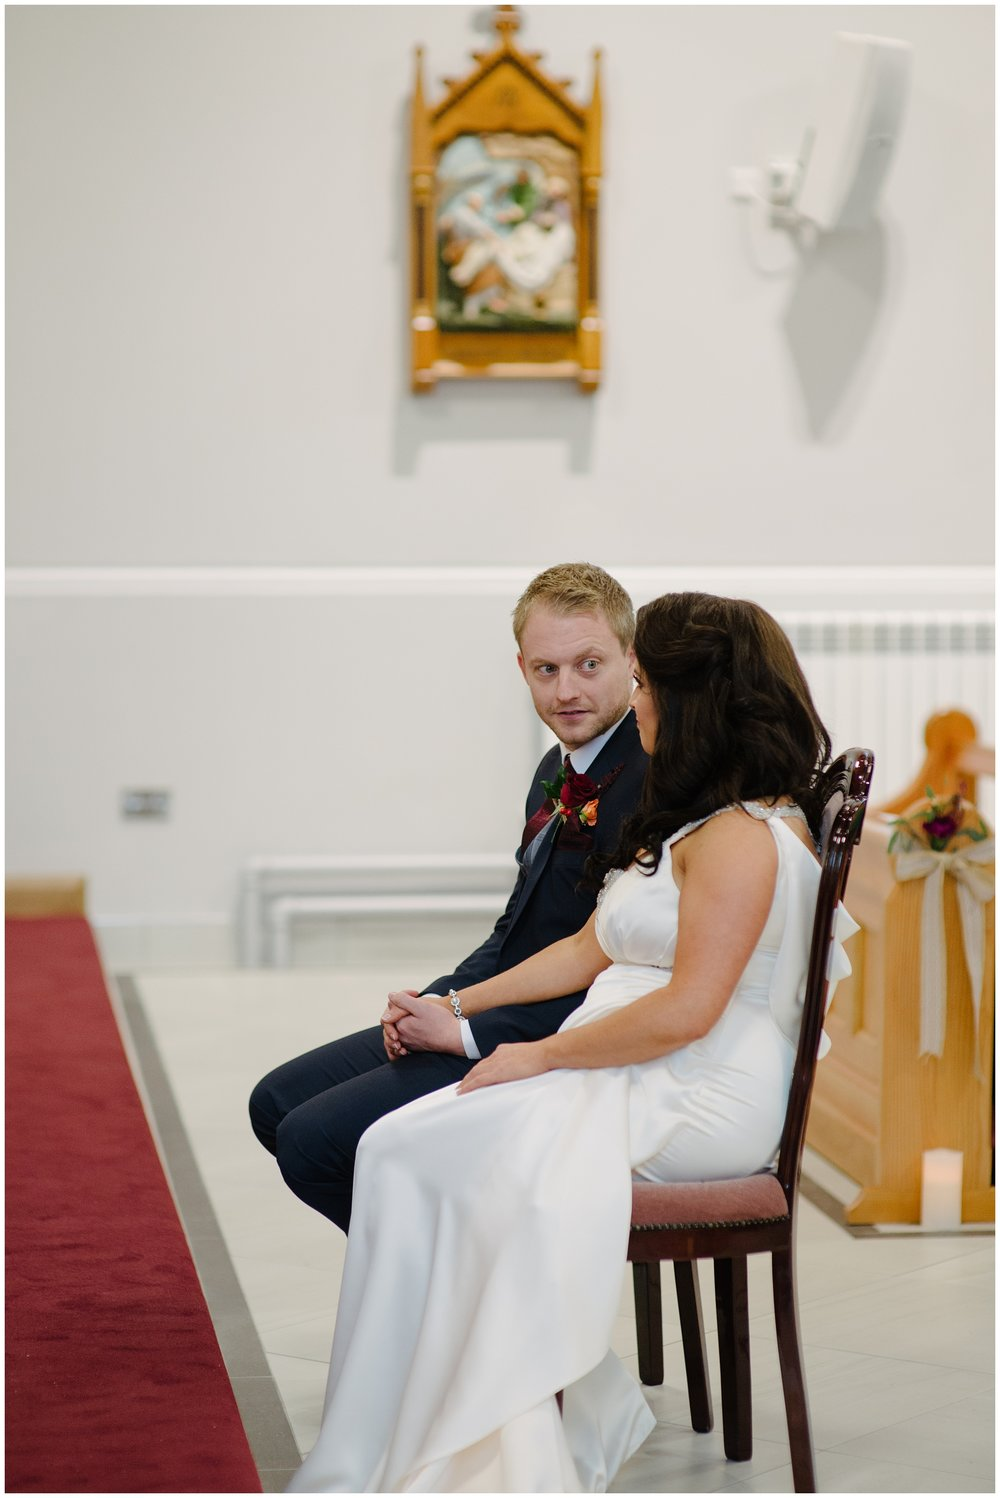 tracey_conor__wedding_jude_browne_photography_0027.jpg